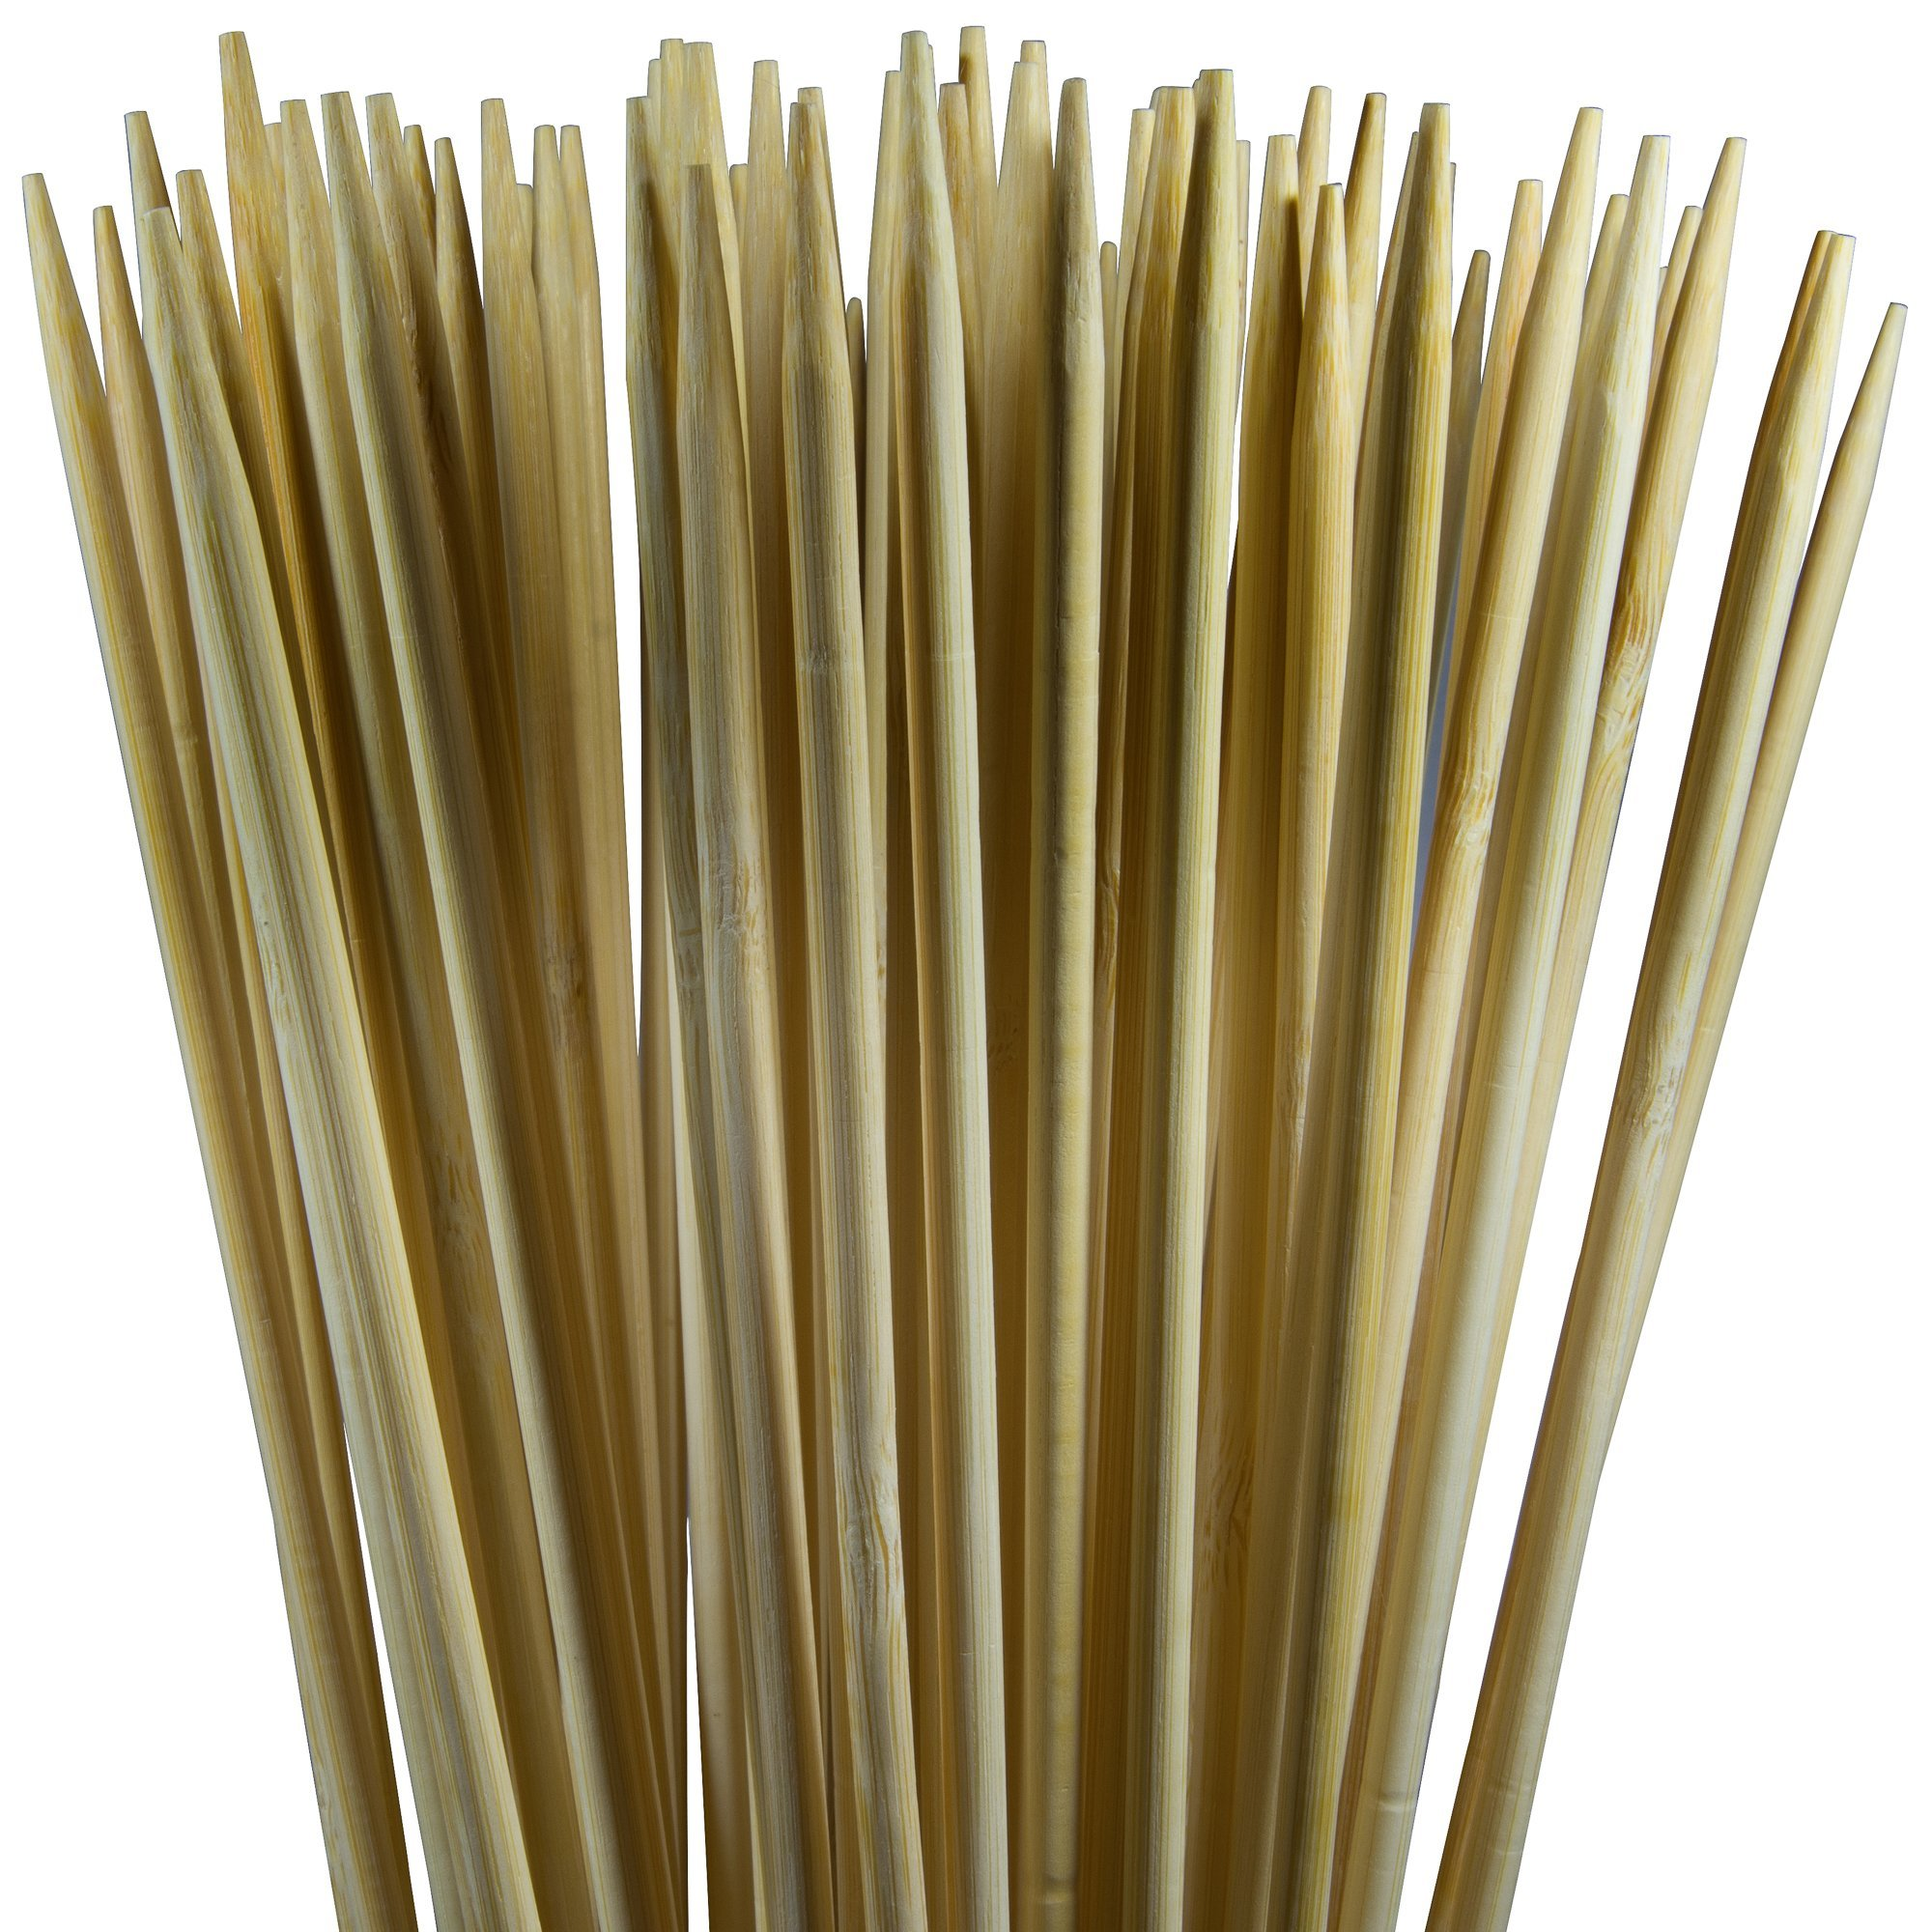 Rainier Outdoors Marshmallow Roasting Sticks, Natural Bamboo (36 x 0.2-Inch, 110 Pieces) by Rainier Outdoors